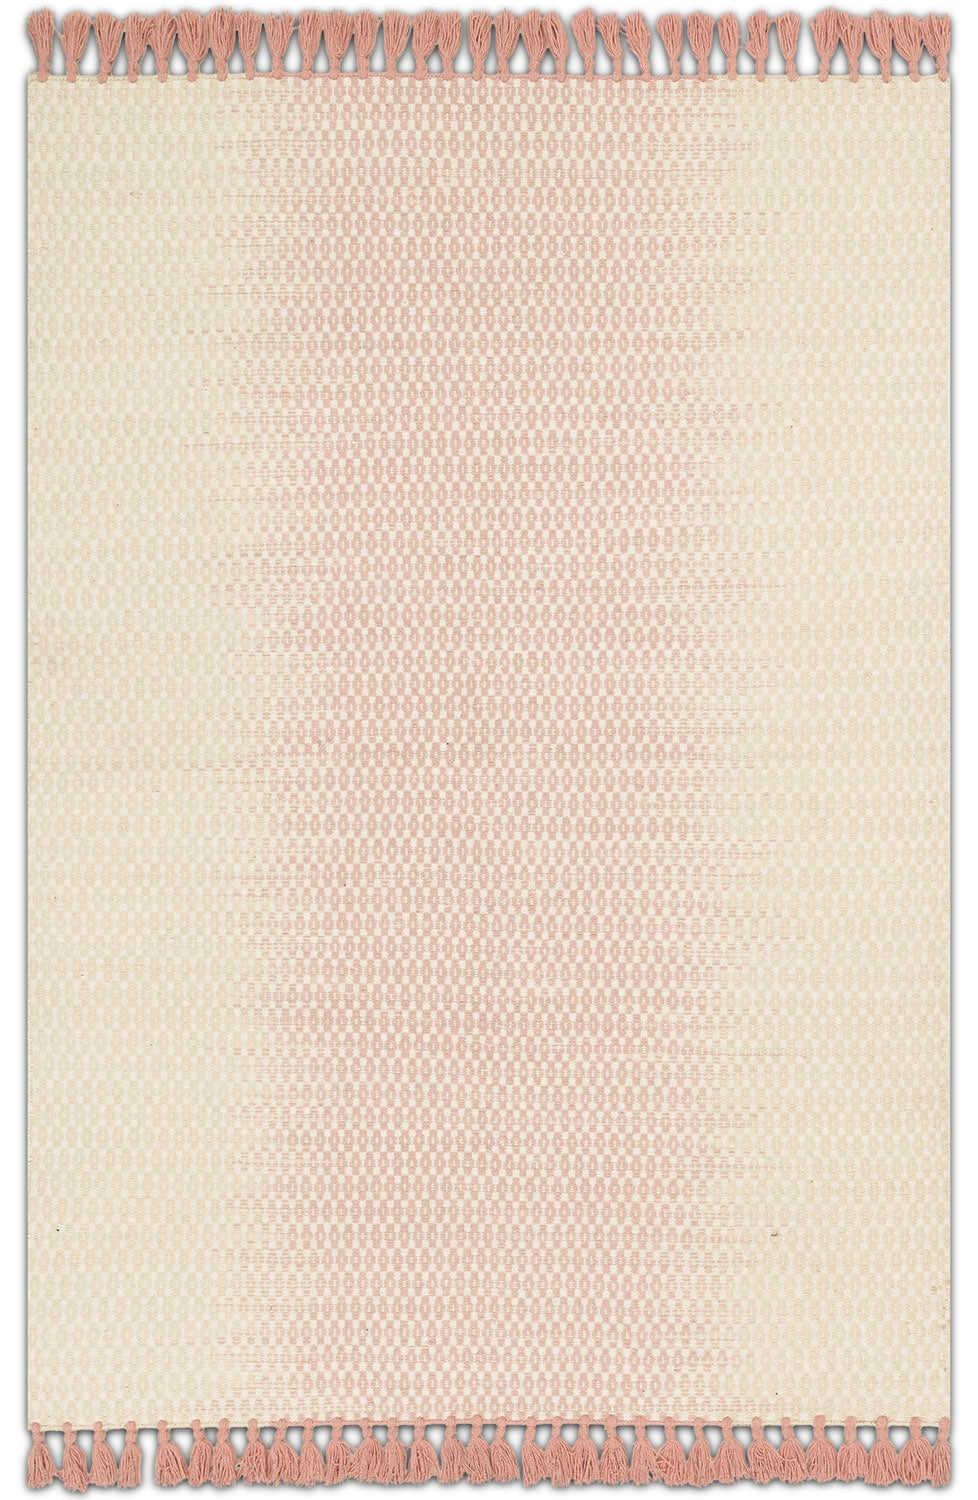 Rugs - Chantilly 5' x 8' Rug - Ivory and Blush